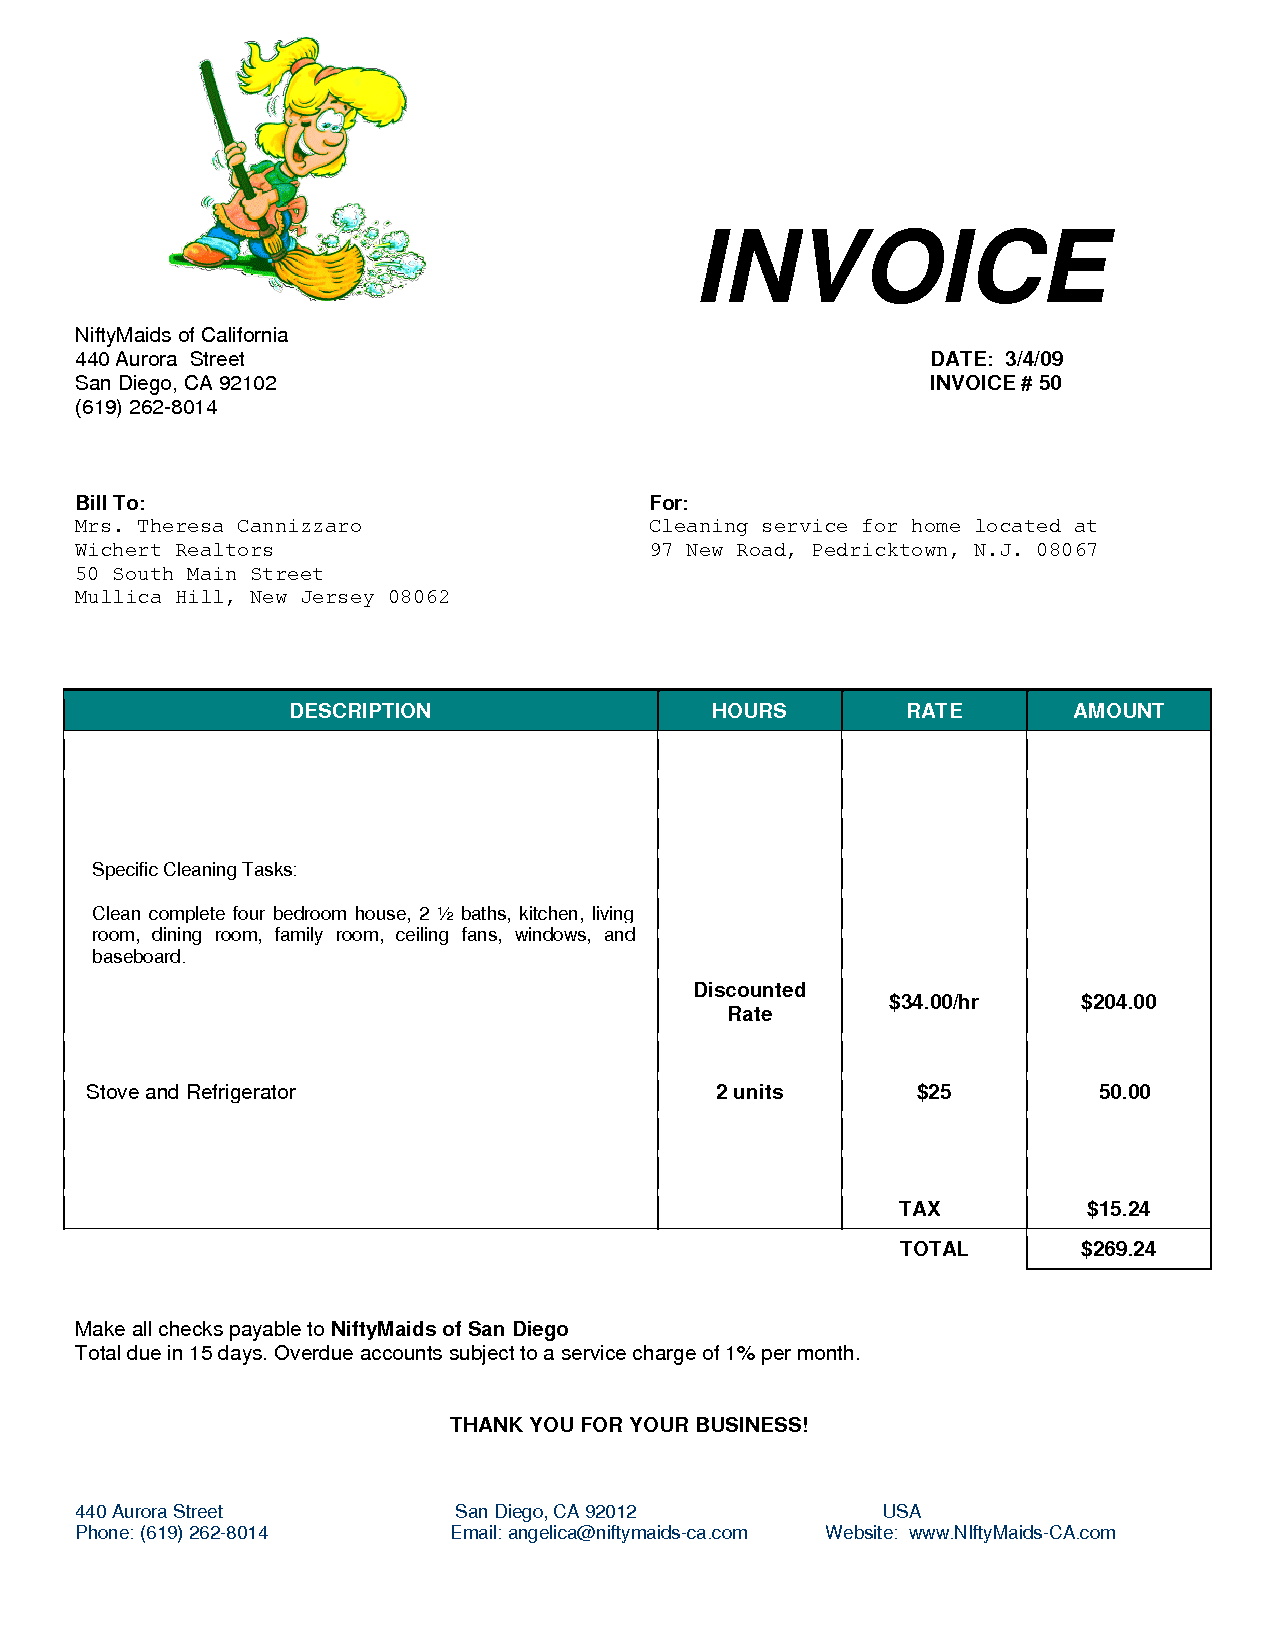 cleaning bill invoice